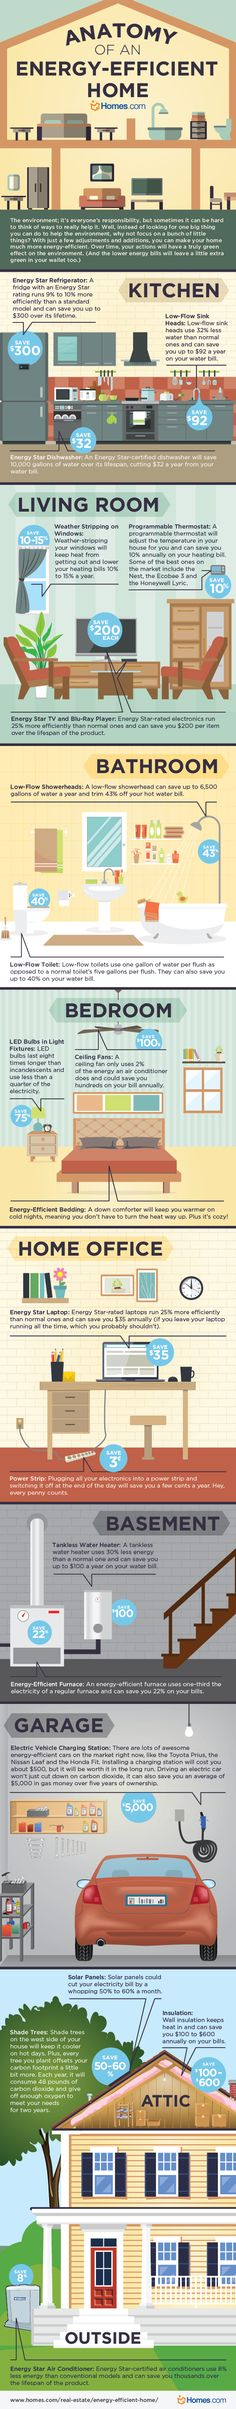 There are dozens of simple little things you can start doing in your day-to-day life that, when done consistently over time, can mean a huge difference to the future of our environment … and there's no better place to start than in your very own home. With just a few adjustments and additions, you can make your home much more energy-efficient. And while installing and implementing these changes may cost you a little extra up front, in the long run you'll be saving hundreds on your energy…